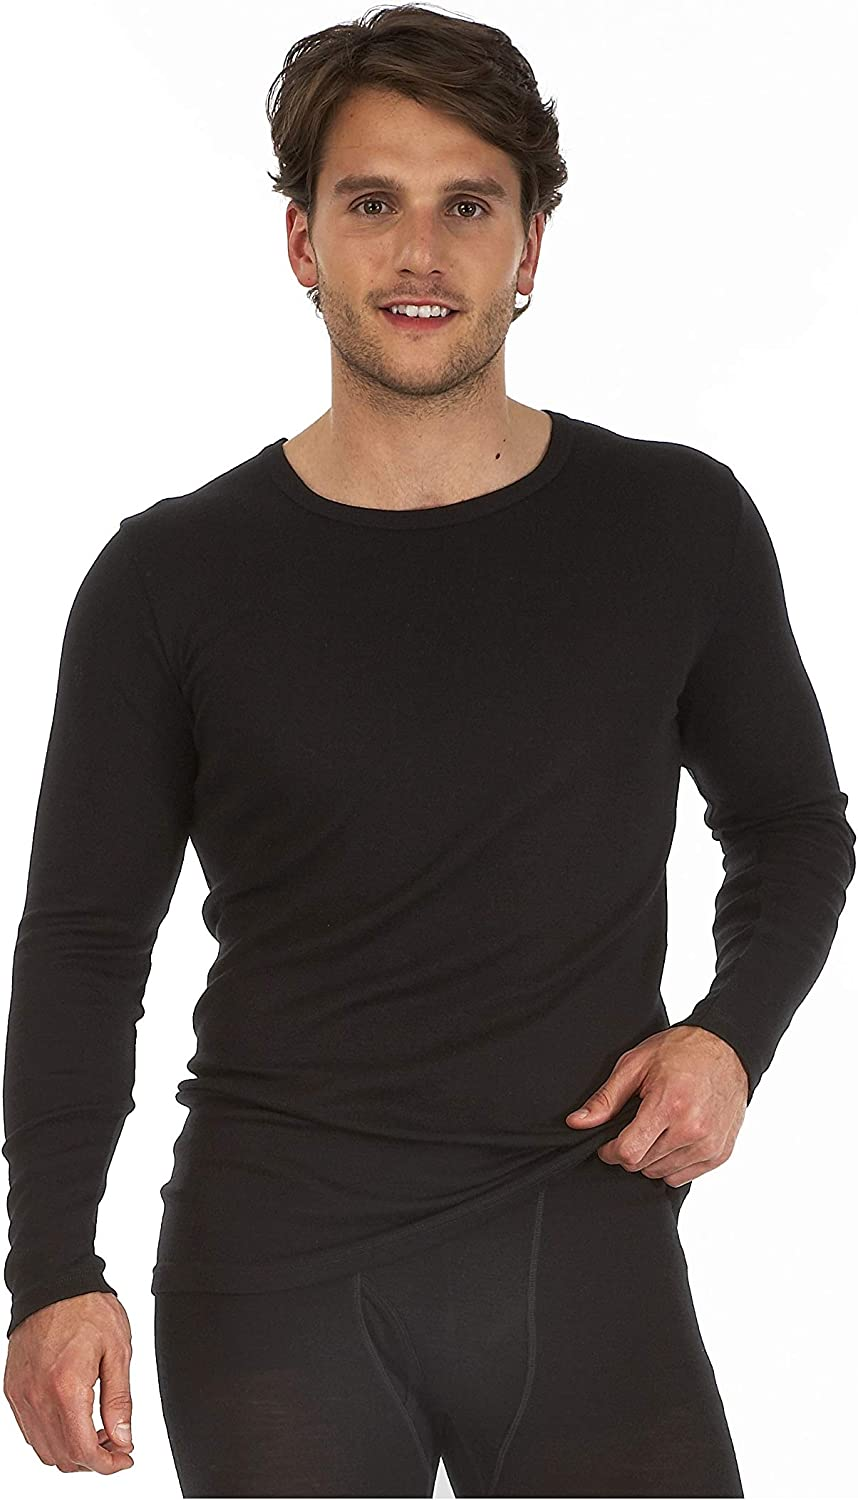 Palm/® Mens Invisible Seamless Long Sleeve Round Neck Thermal Top Base Layer